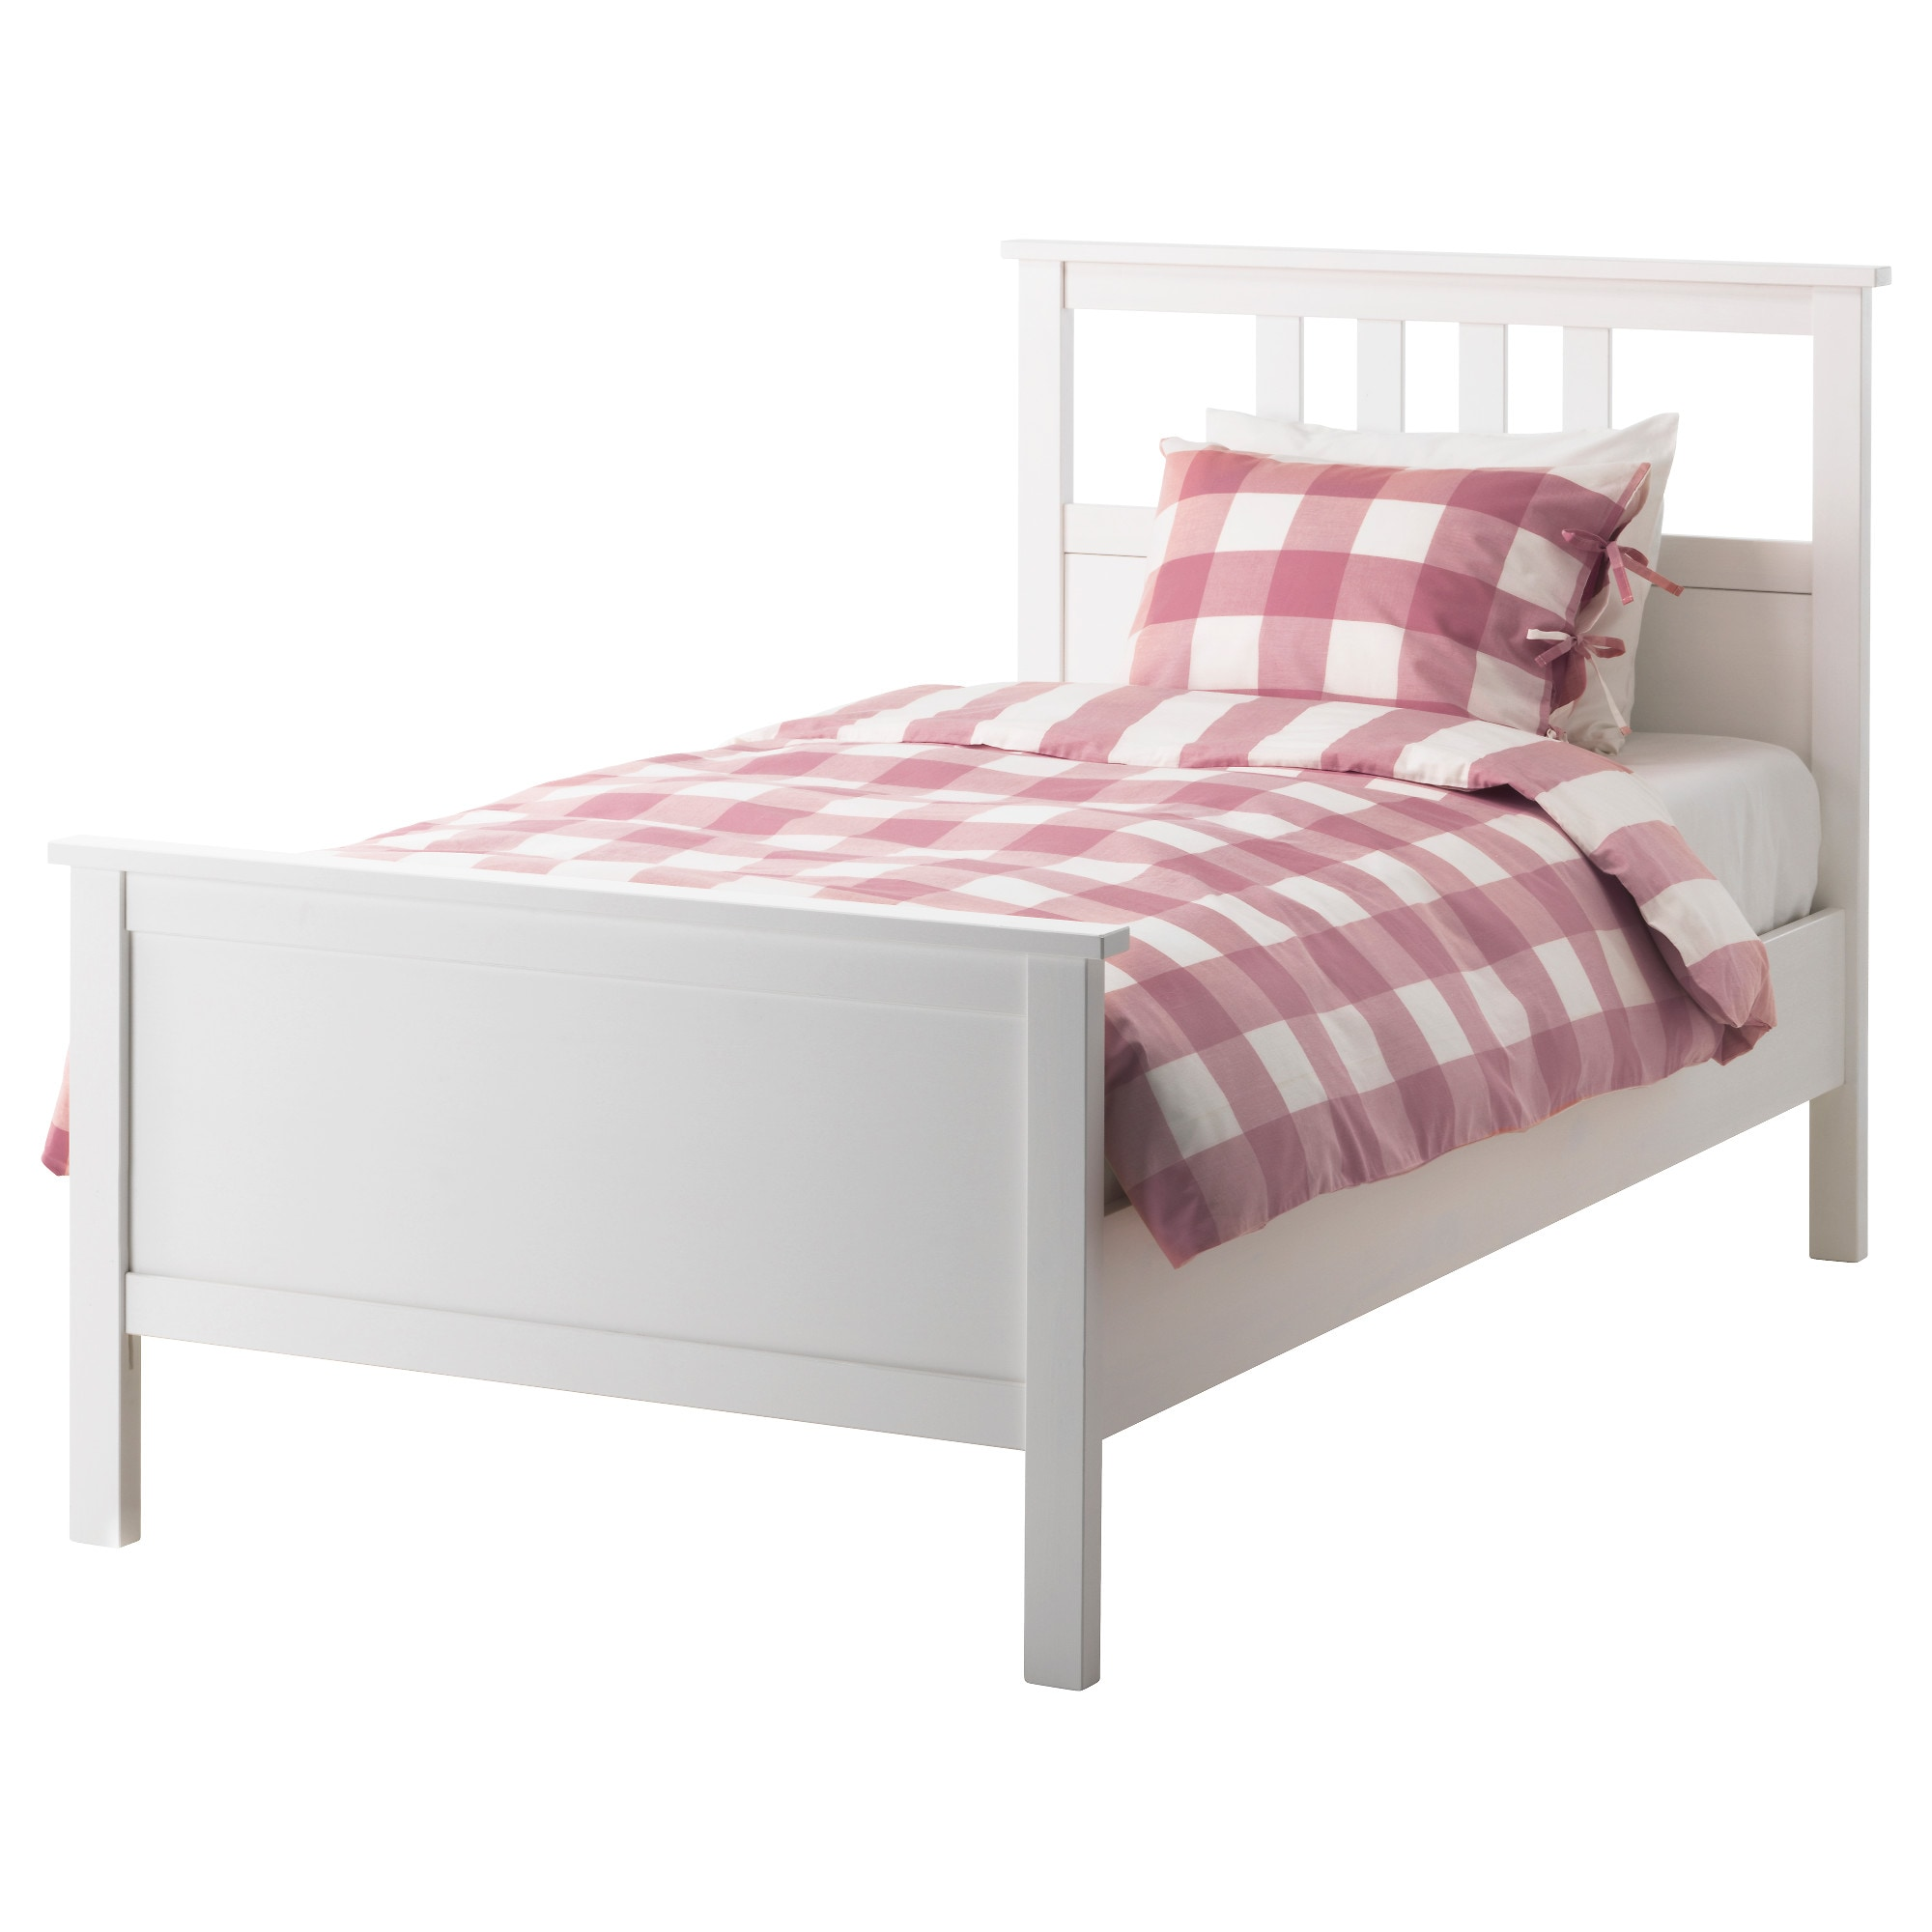 hemnes bed frame white stain length 79 18 width 43 - Twin Bed And Frame